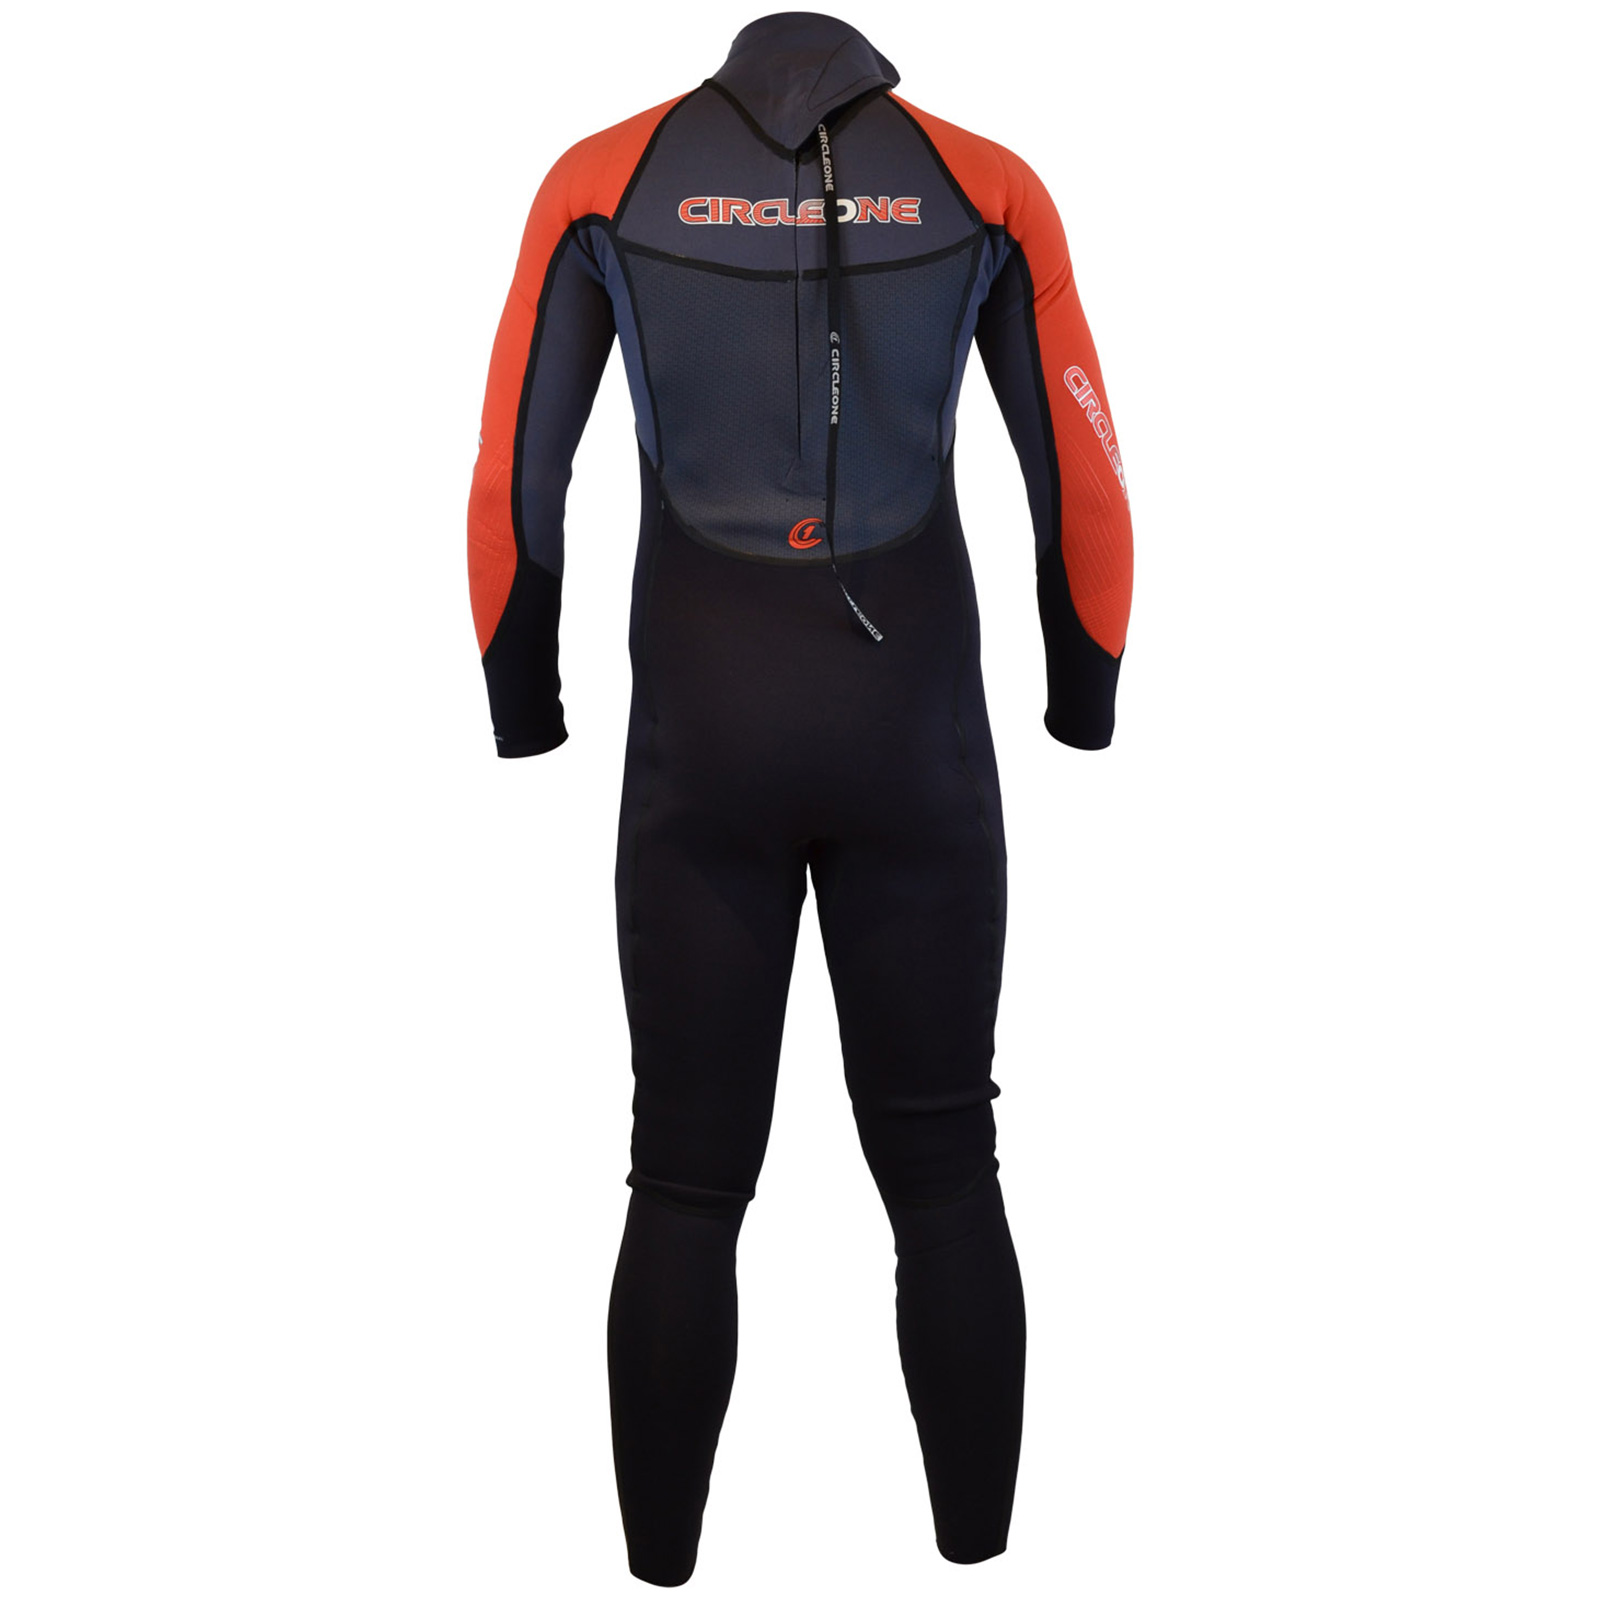 a1e4c28b4a35 ICON Mens Winter Wetsuit Online | Built for the Toughest Conditions